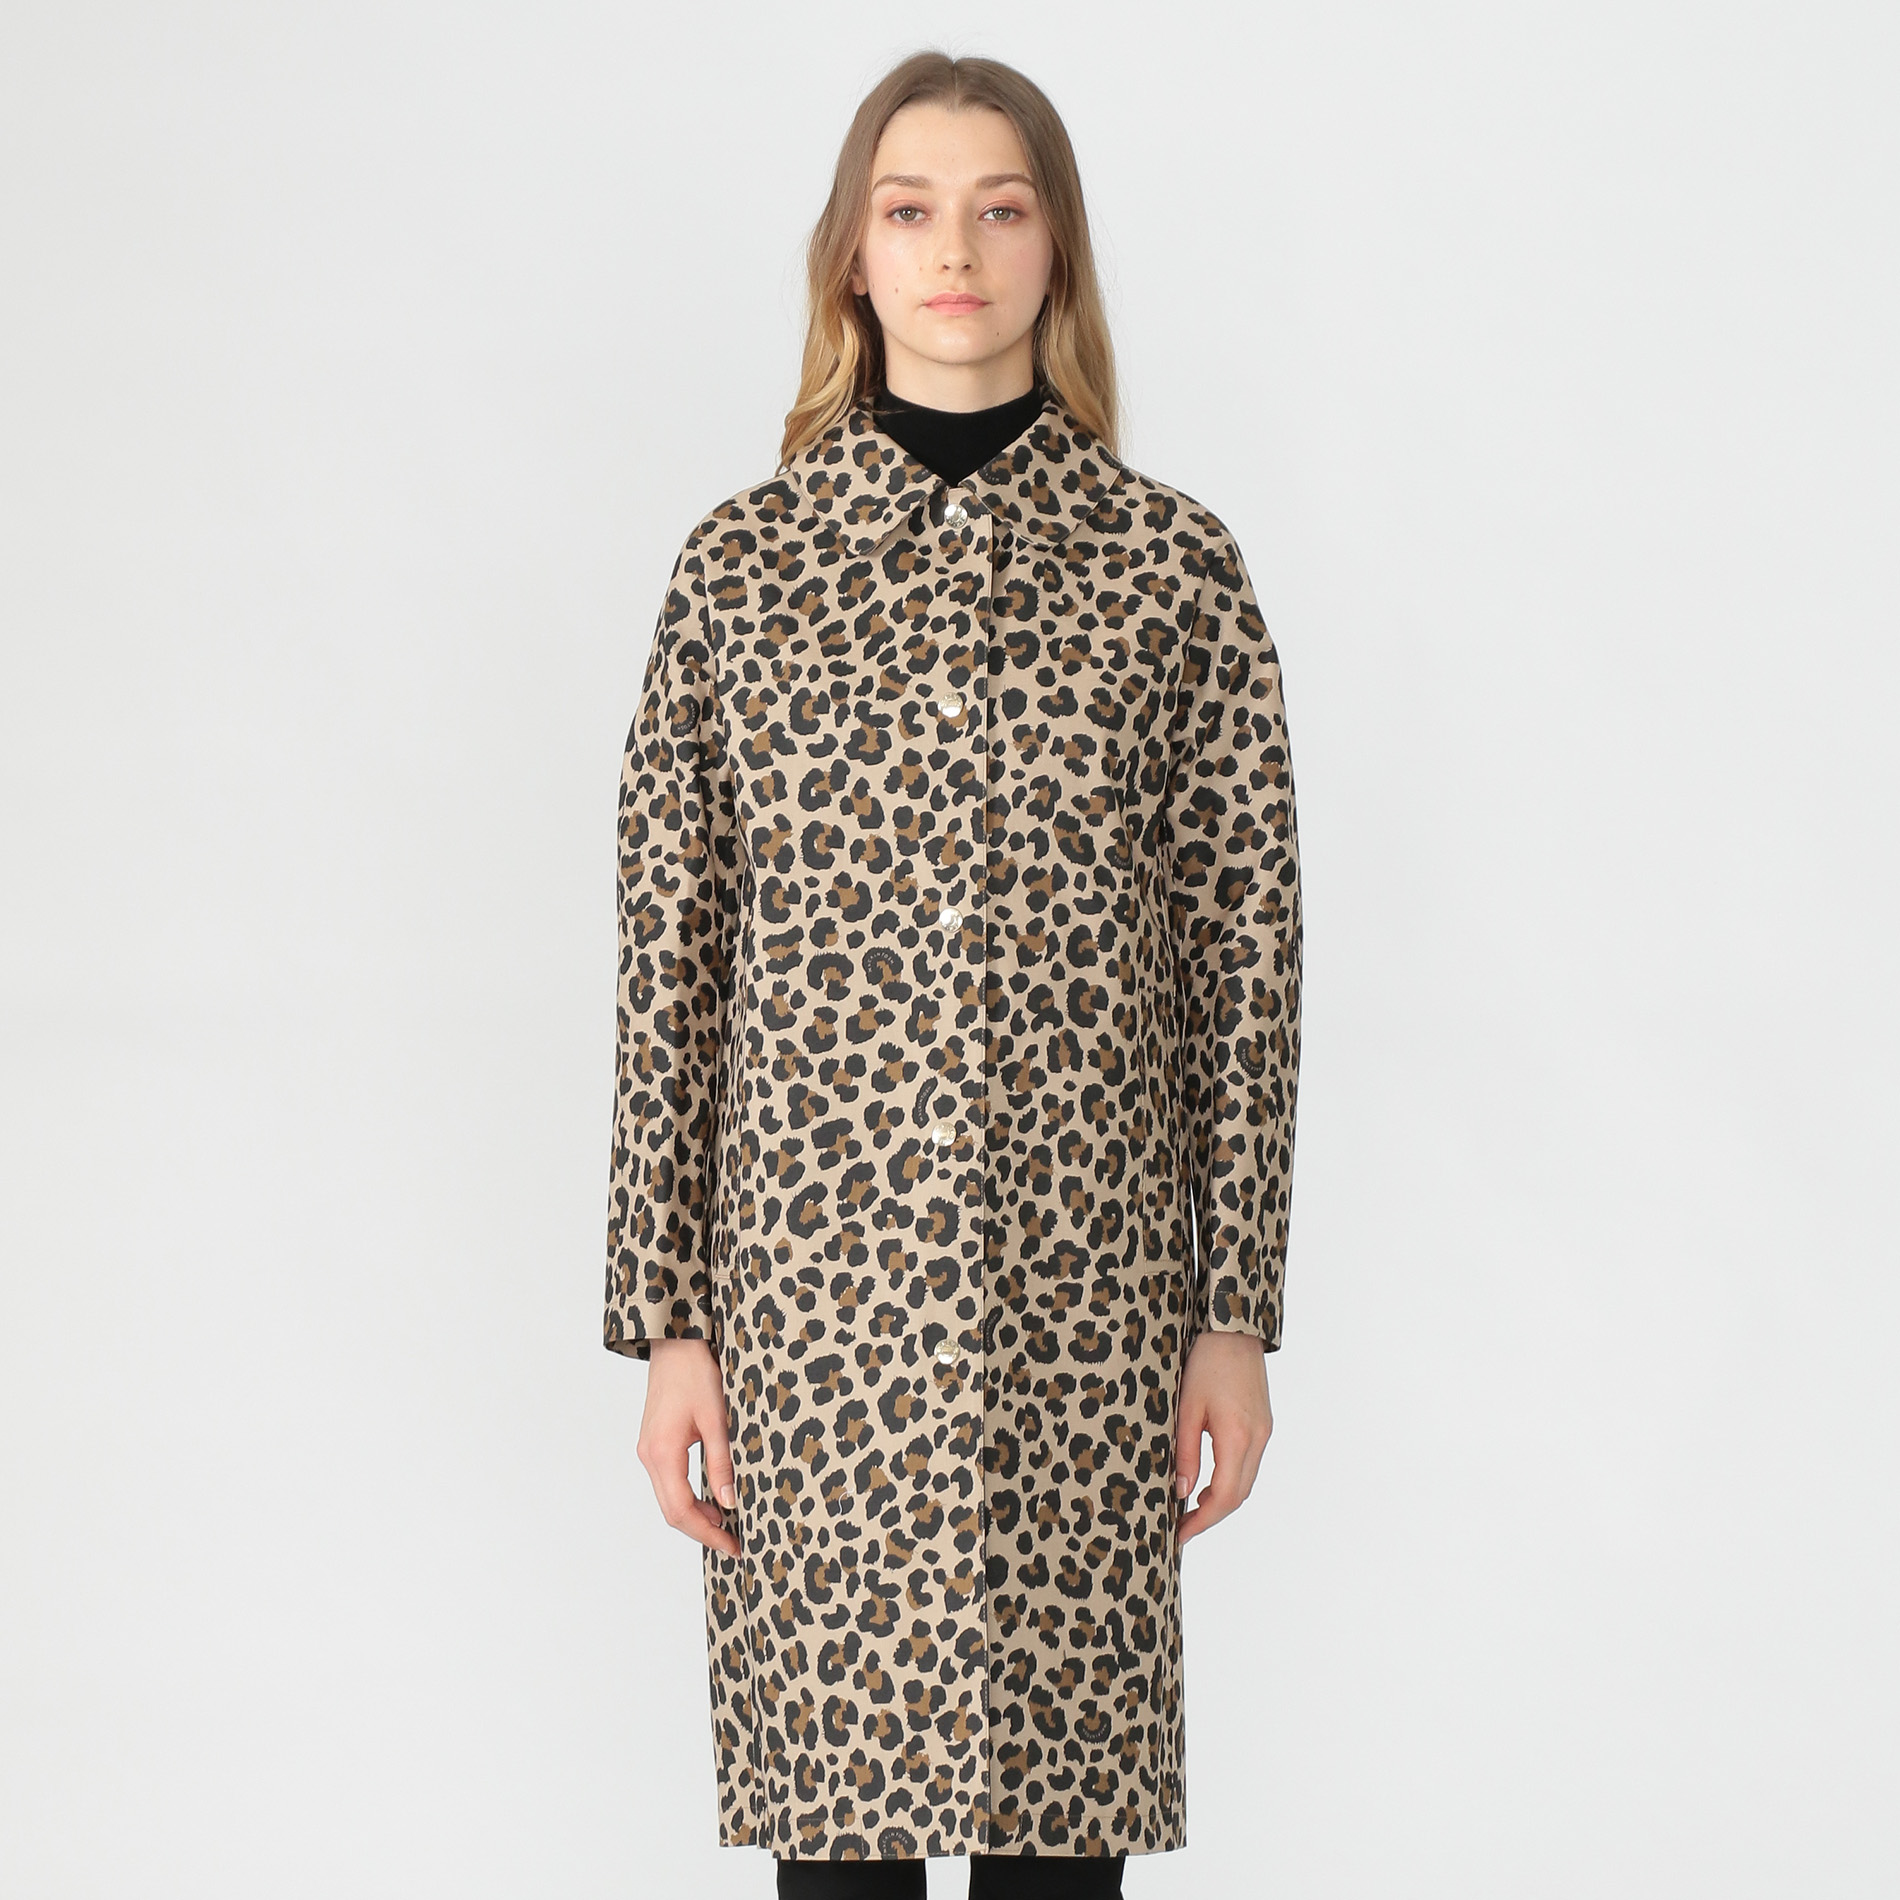 【MACKINTOSH】【FAIRLIE LEOPARD】ゴム引きコート